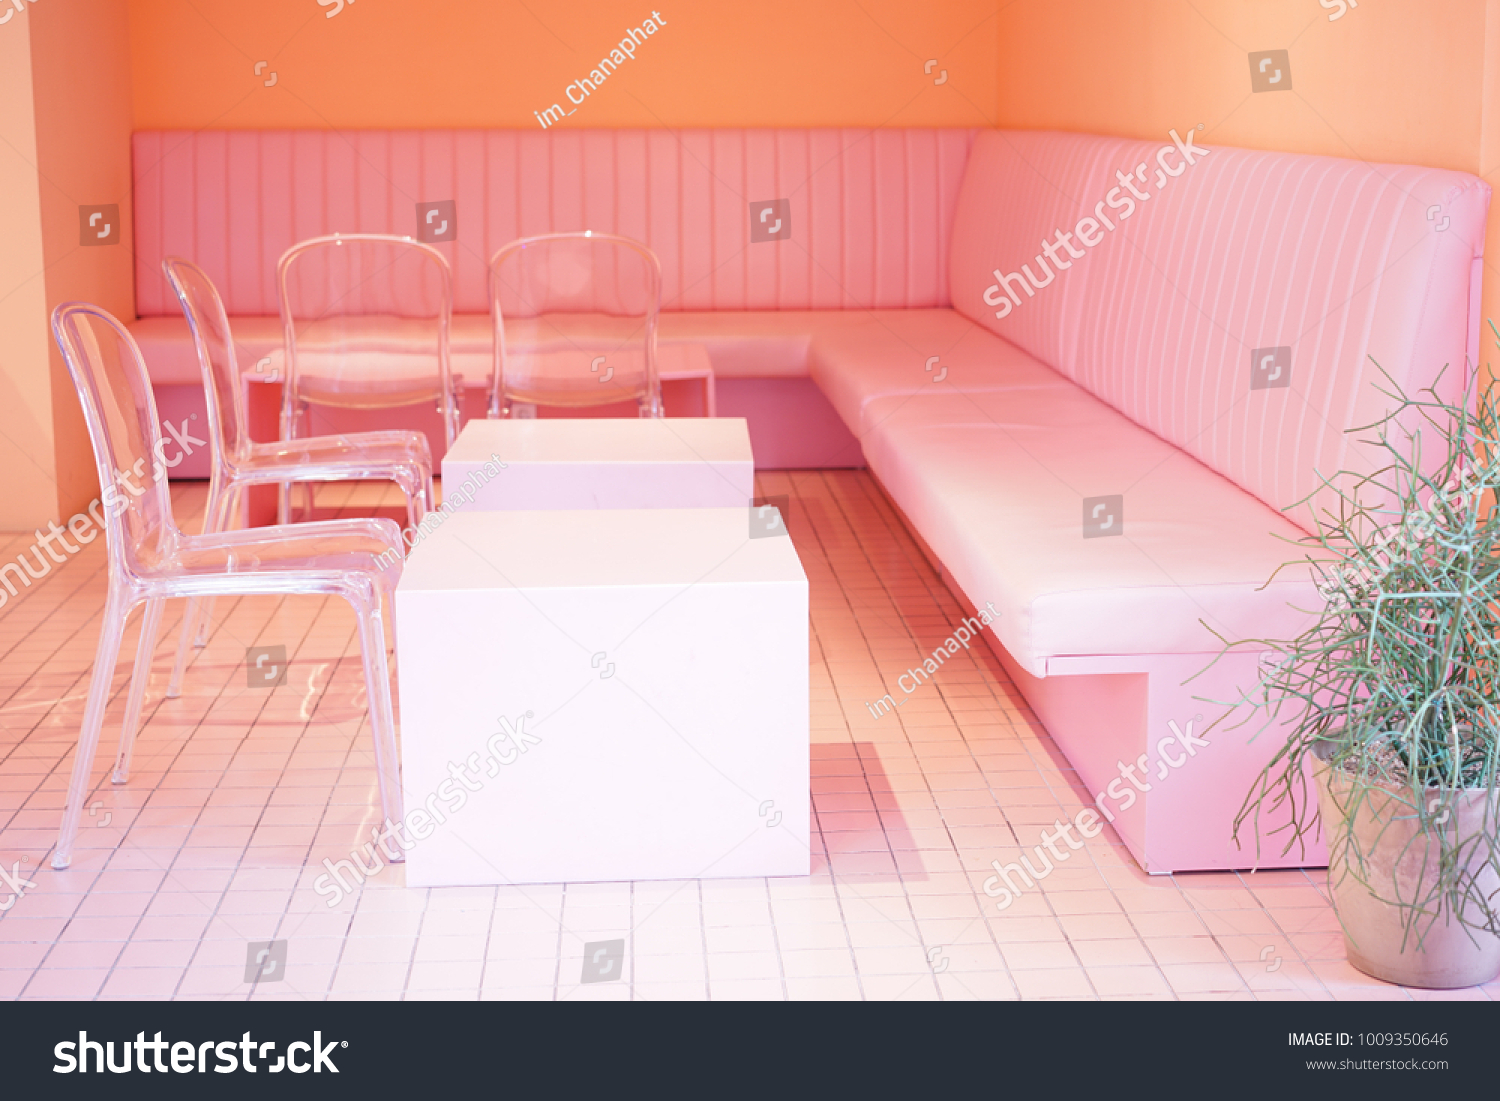 Pink Seats Pink Room Pink Cafe Stock Photo Edit Now 1009350646